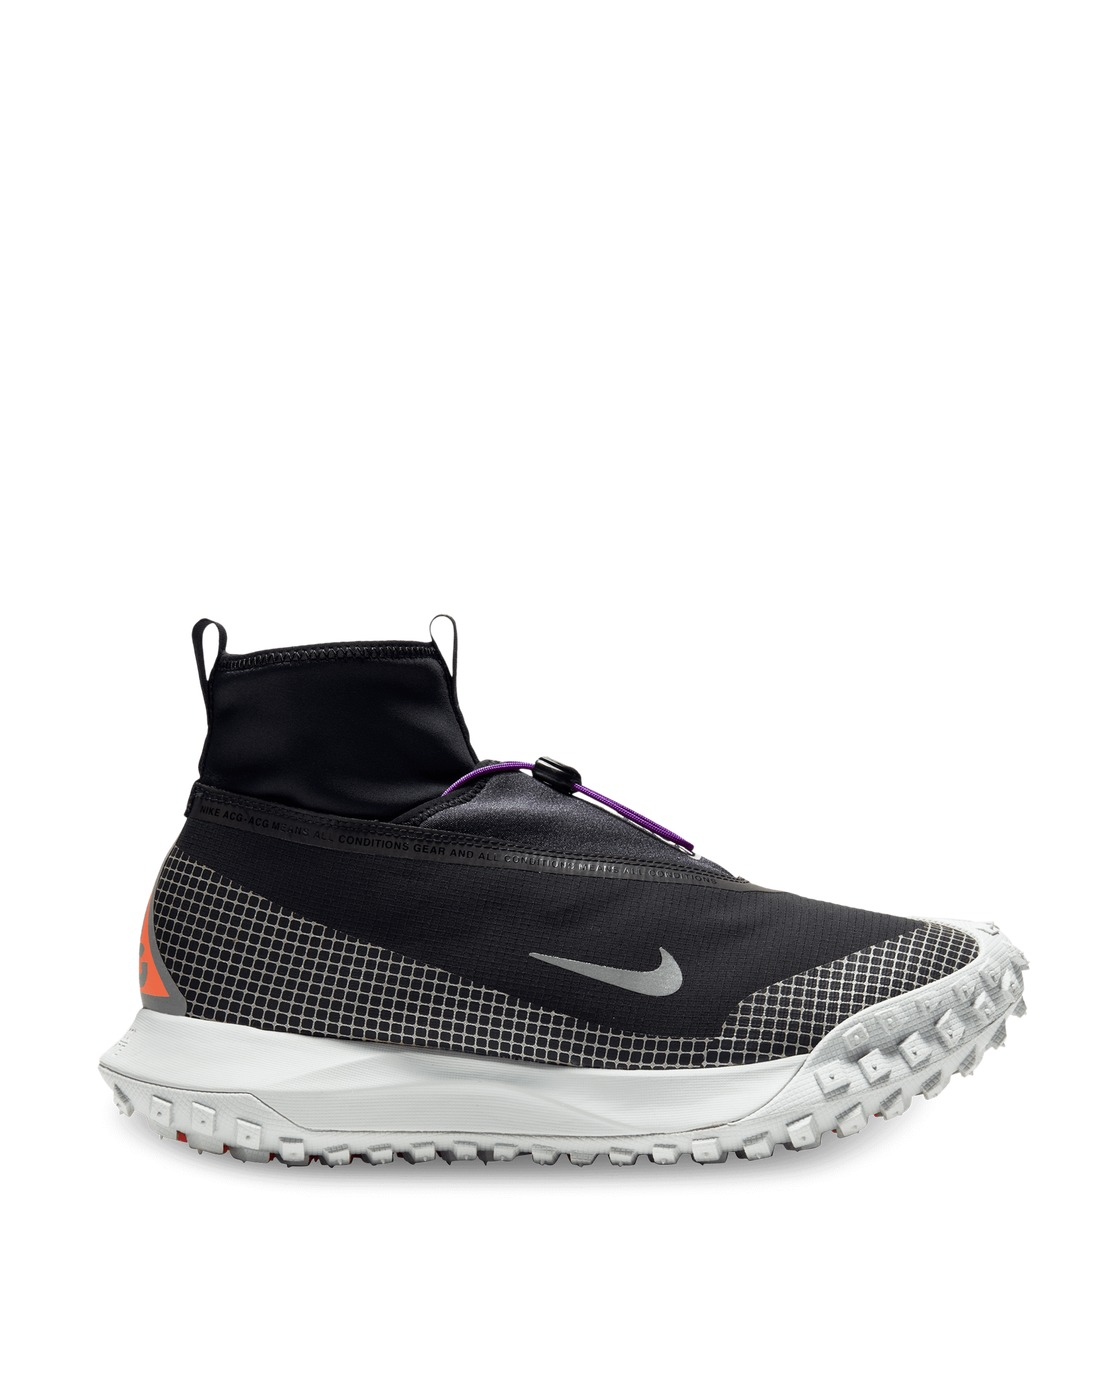 Nike Special Project Mountain Fly Gore Tex Sneakers Black/Metallic Silver